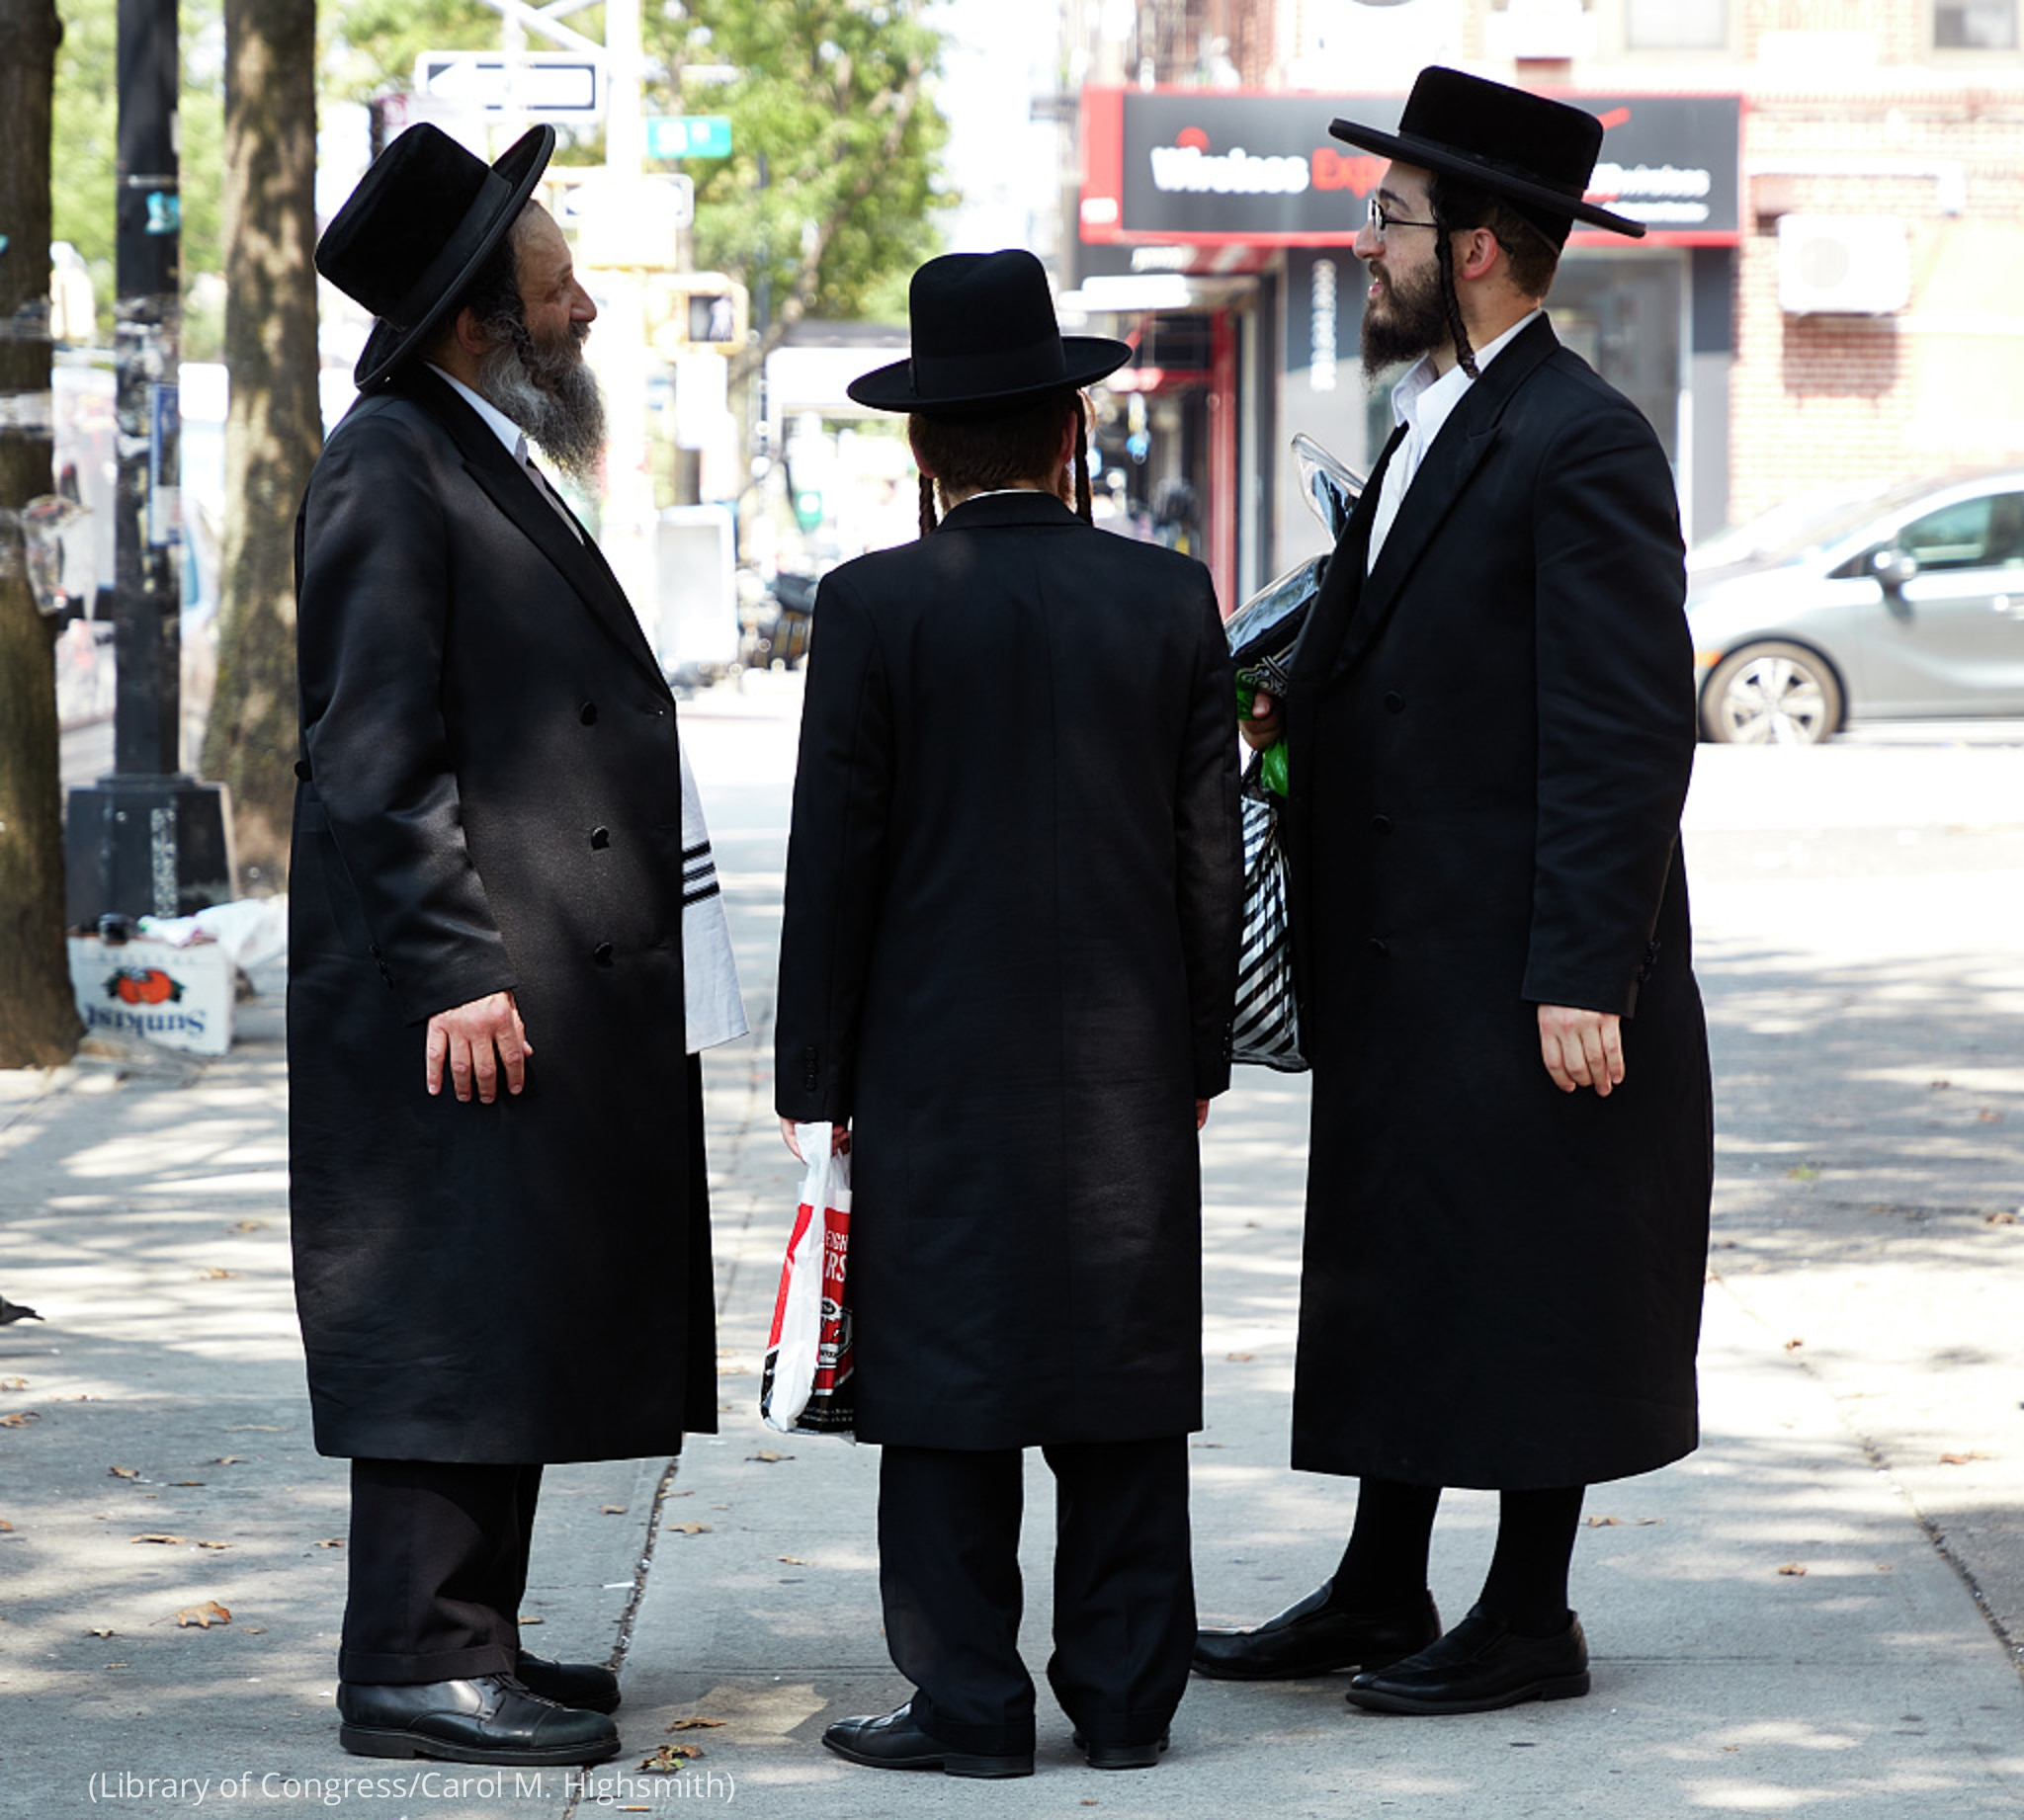 Three men dressed in black with beards, long coats, black hats, and side locks in their hair, talking on a New York street (Library of Congress/Carol M. Highsmith)